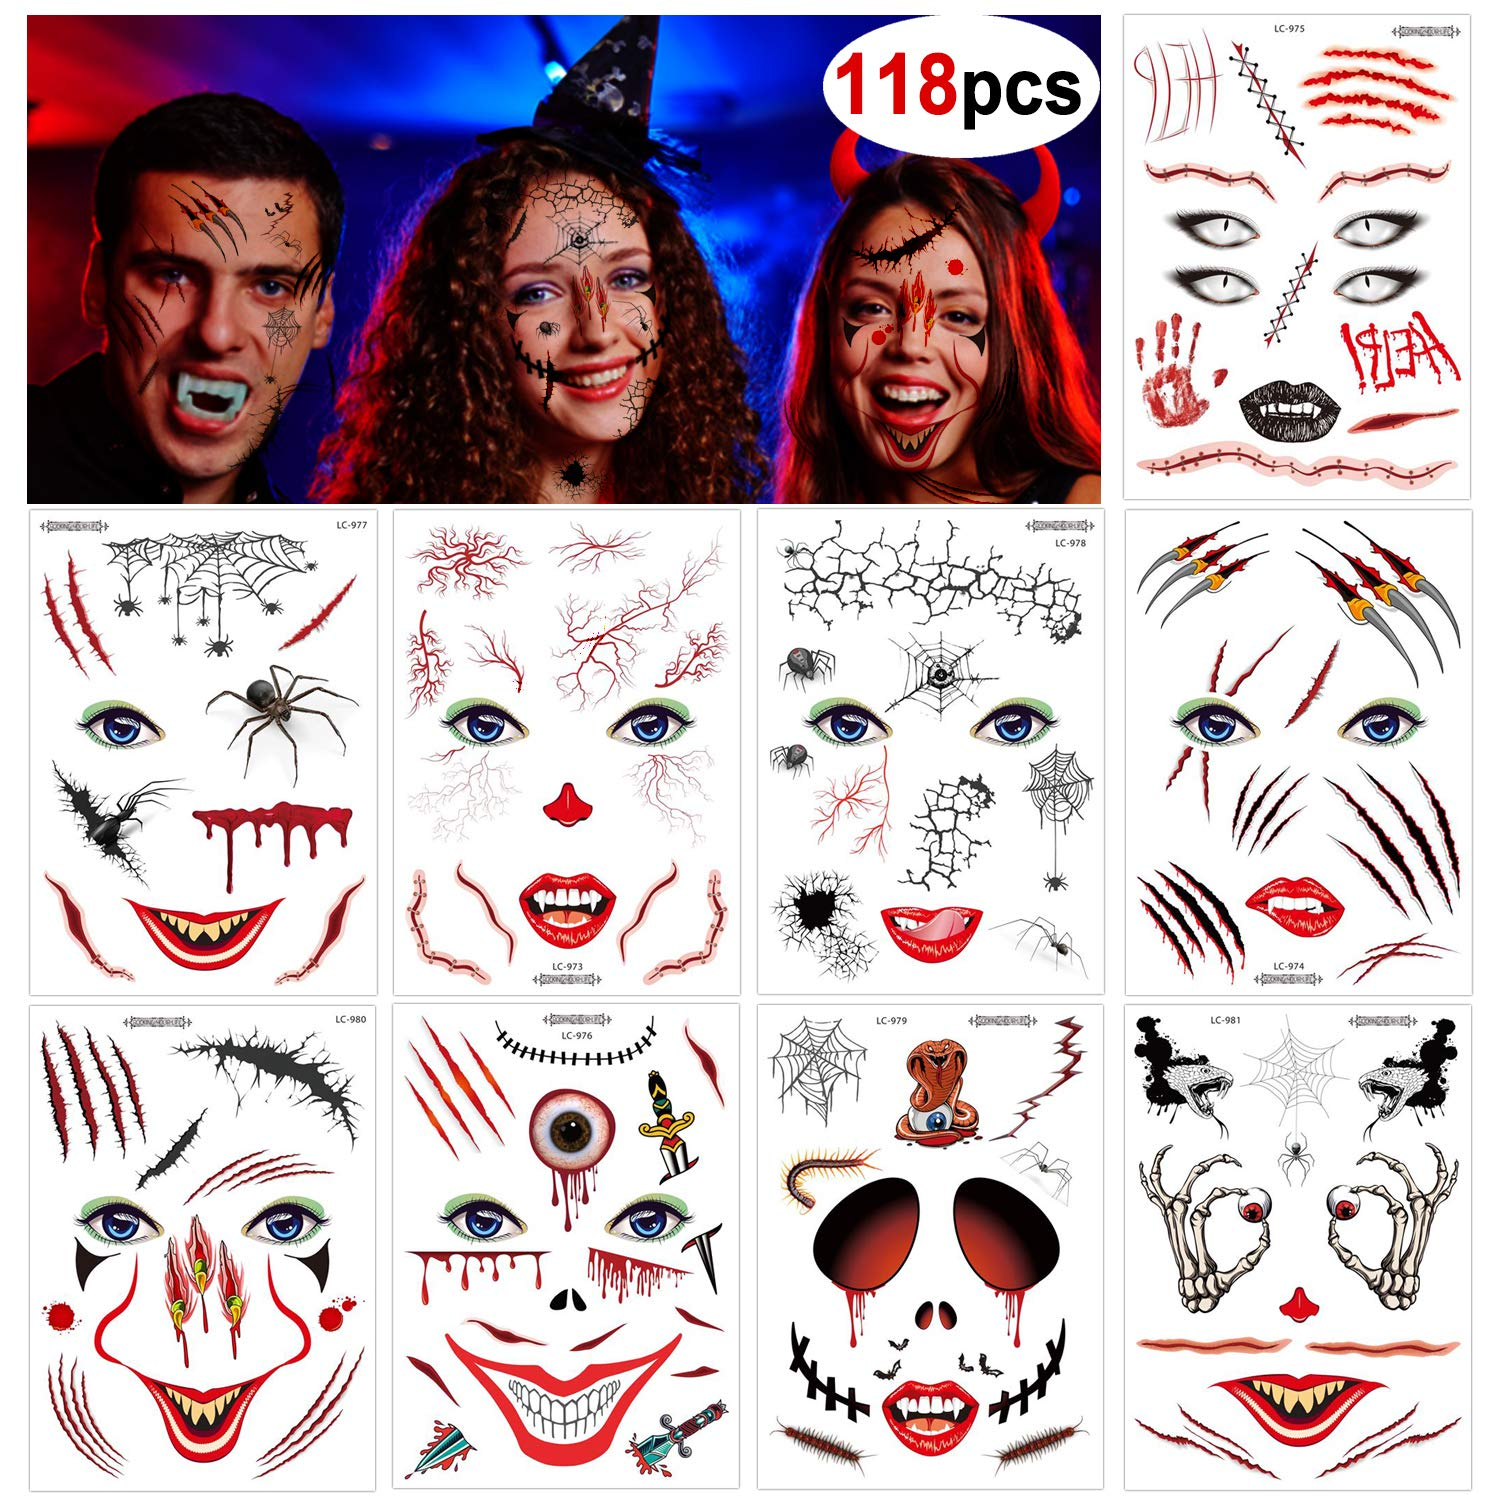 Konsait 9 Pack Halloween Face Temporary Tattoos, Day of the Dead Bloody Scar Black Skeleton Spider Web Transfers Face Tattoo for Women Men Adult Kids Halloween Masquerade Party Favor Supplies